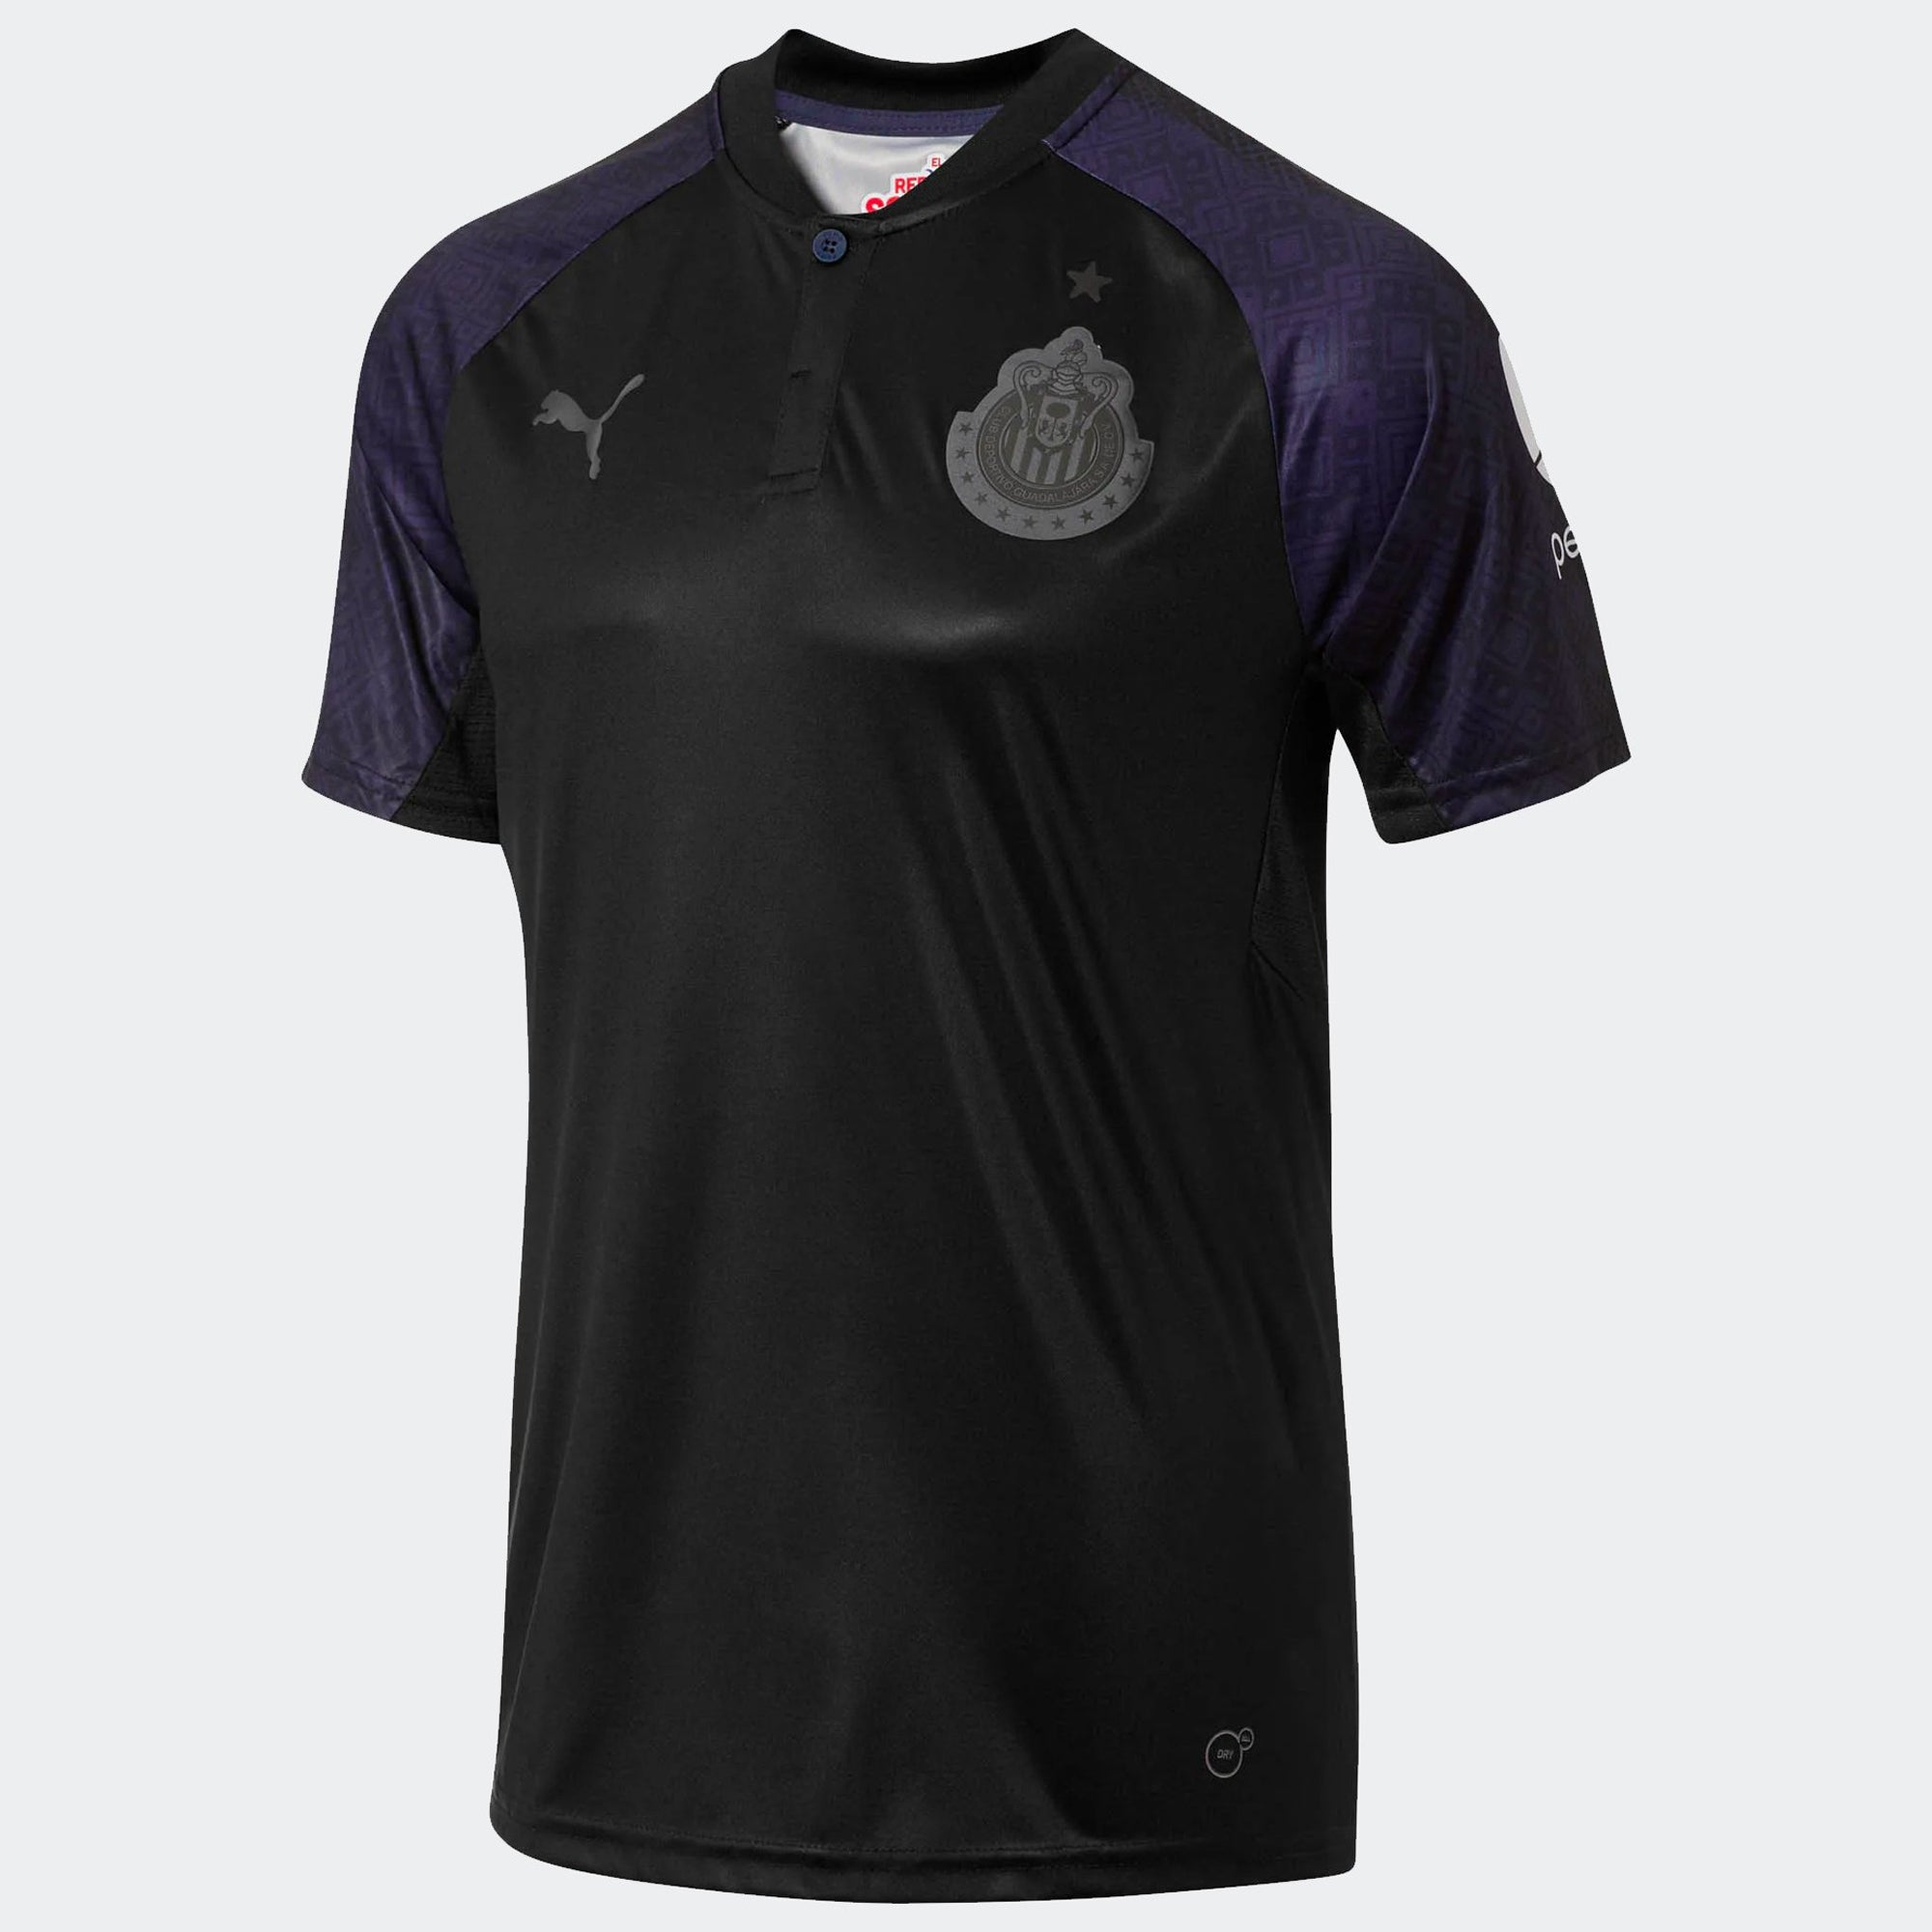 Chivas 17/18 Away Replica Shirt